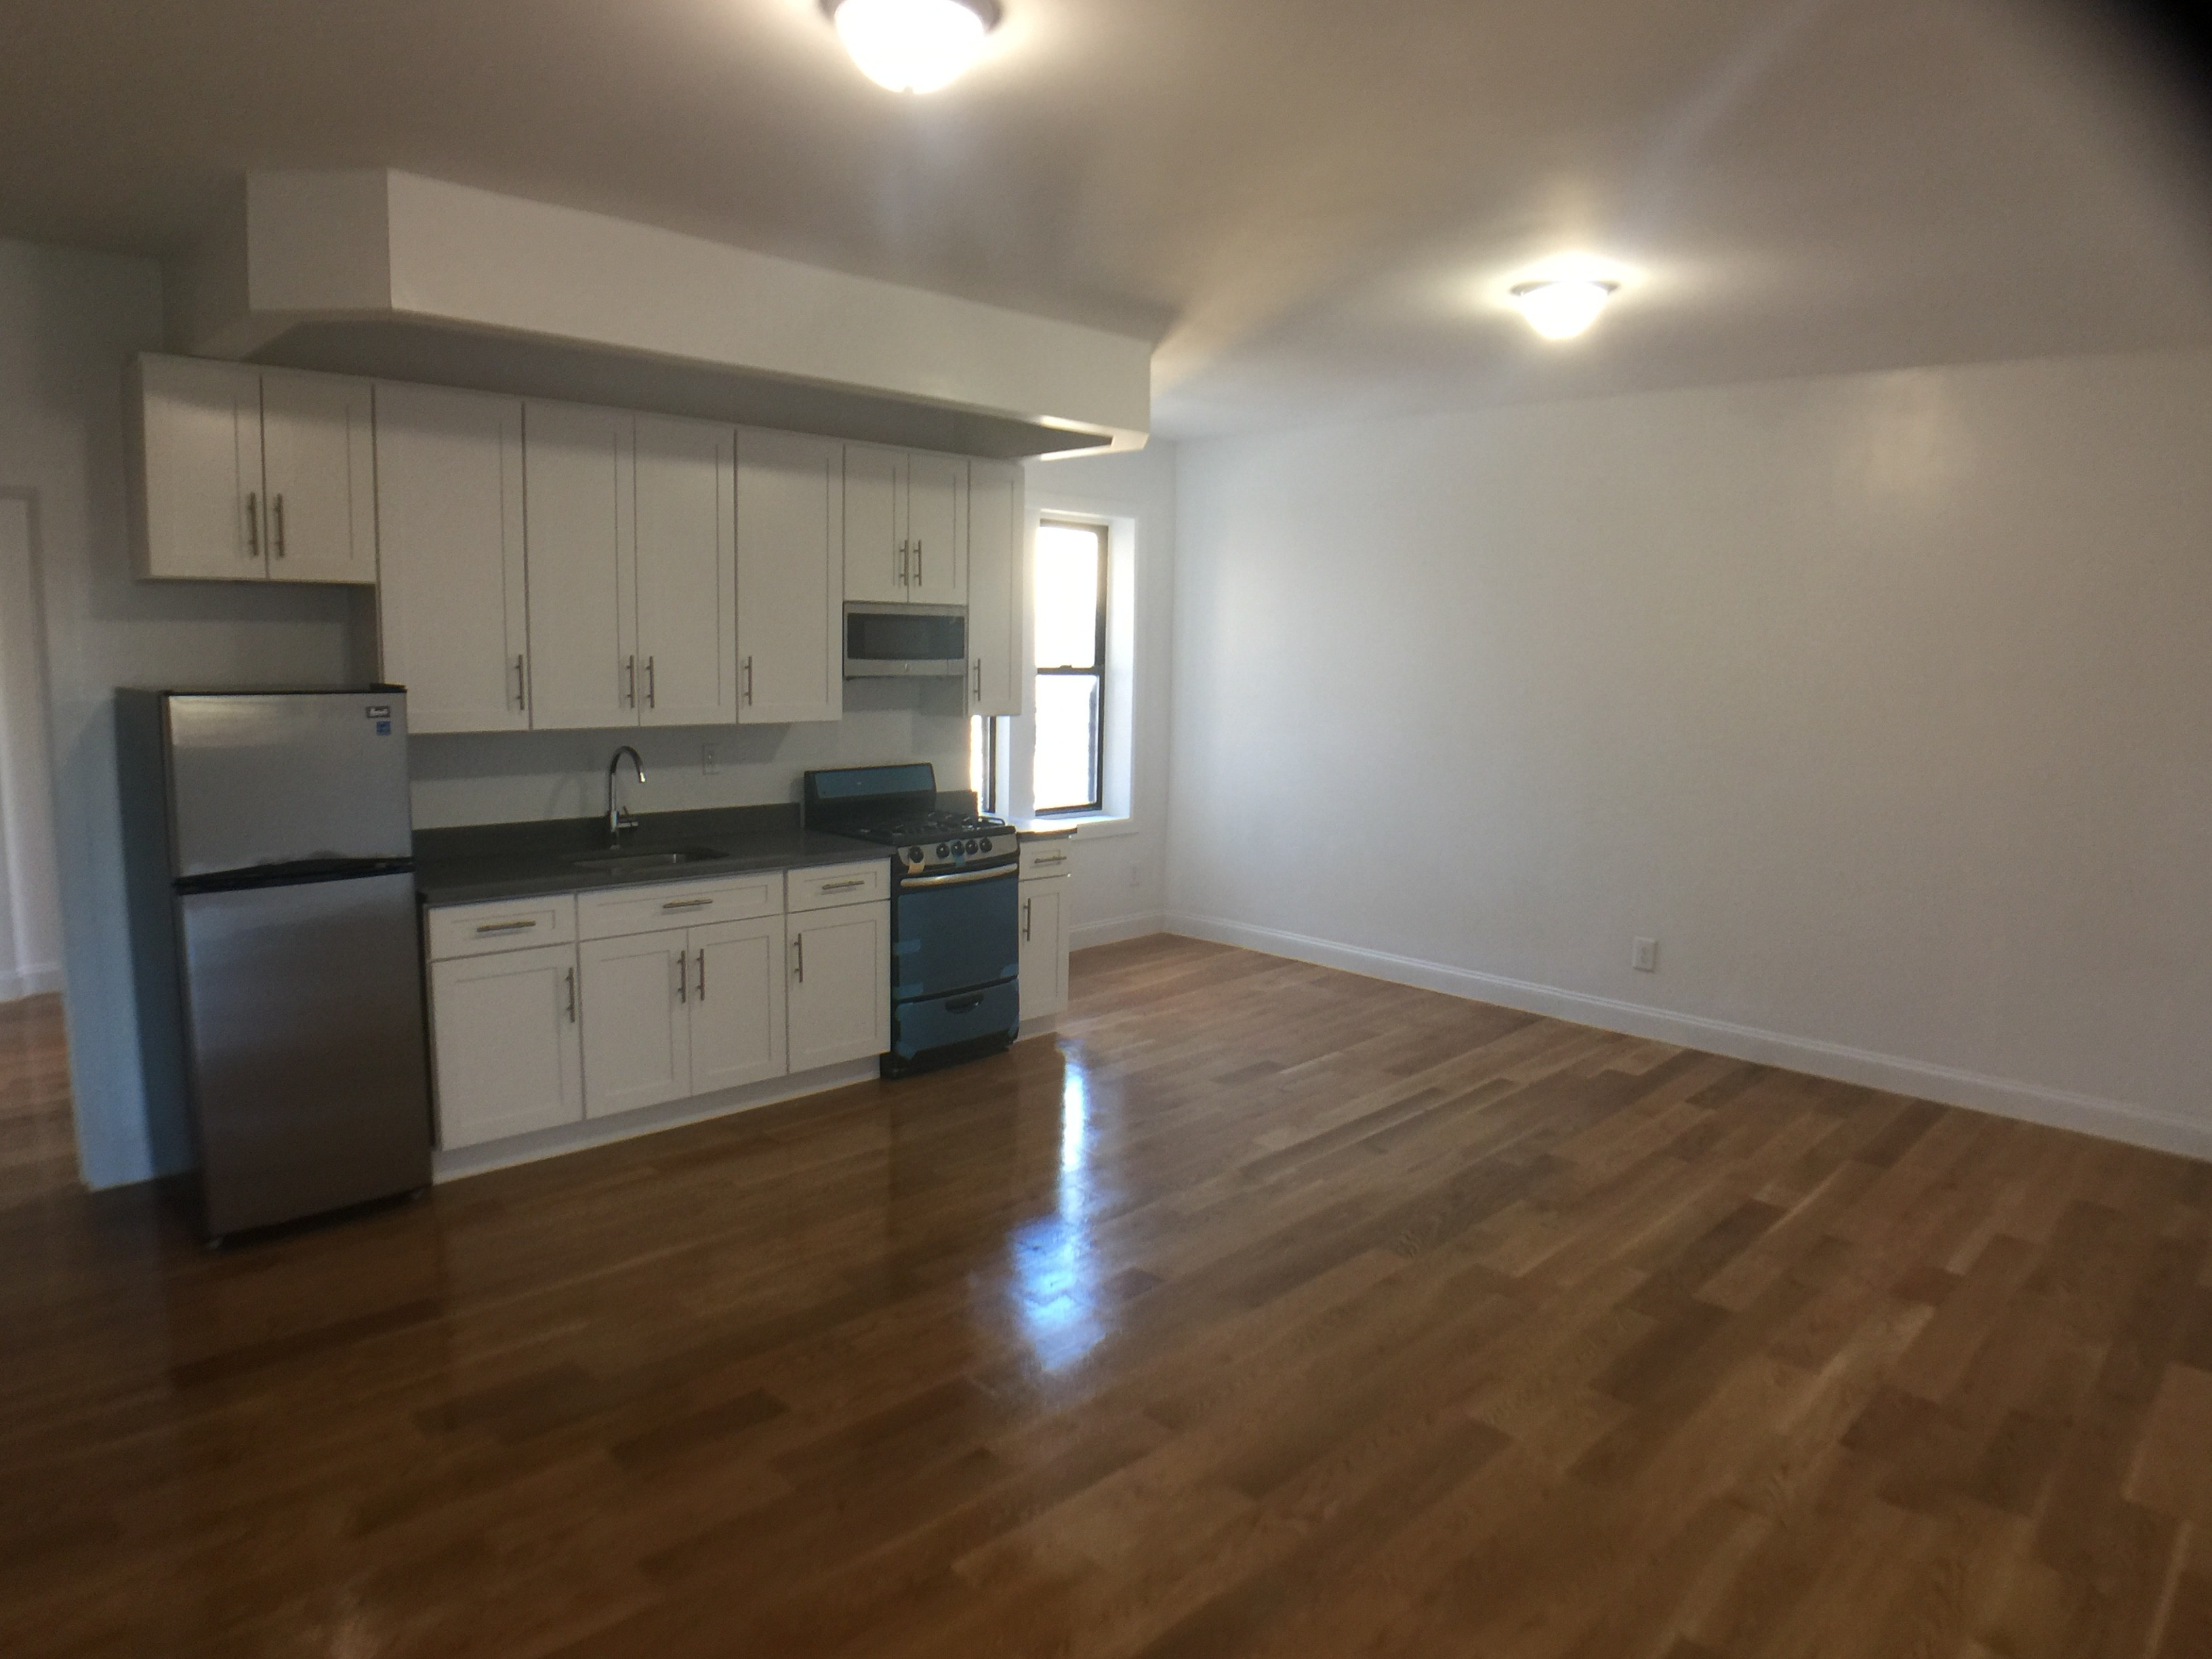 2120 Tiebout Avenue A53 Bronx Ny 10457 2 Bedroom Apartment For Rent For 1 725 Month Zumper